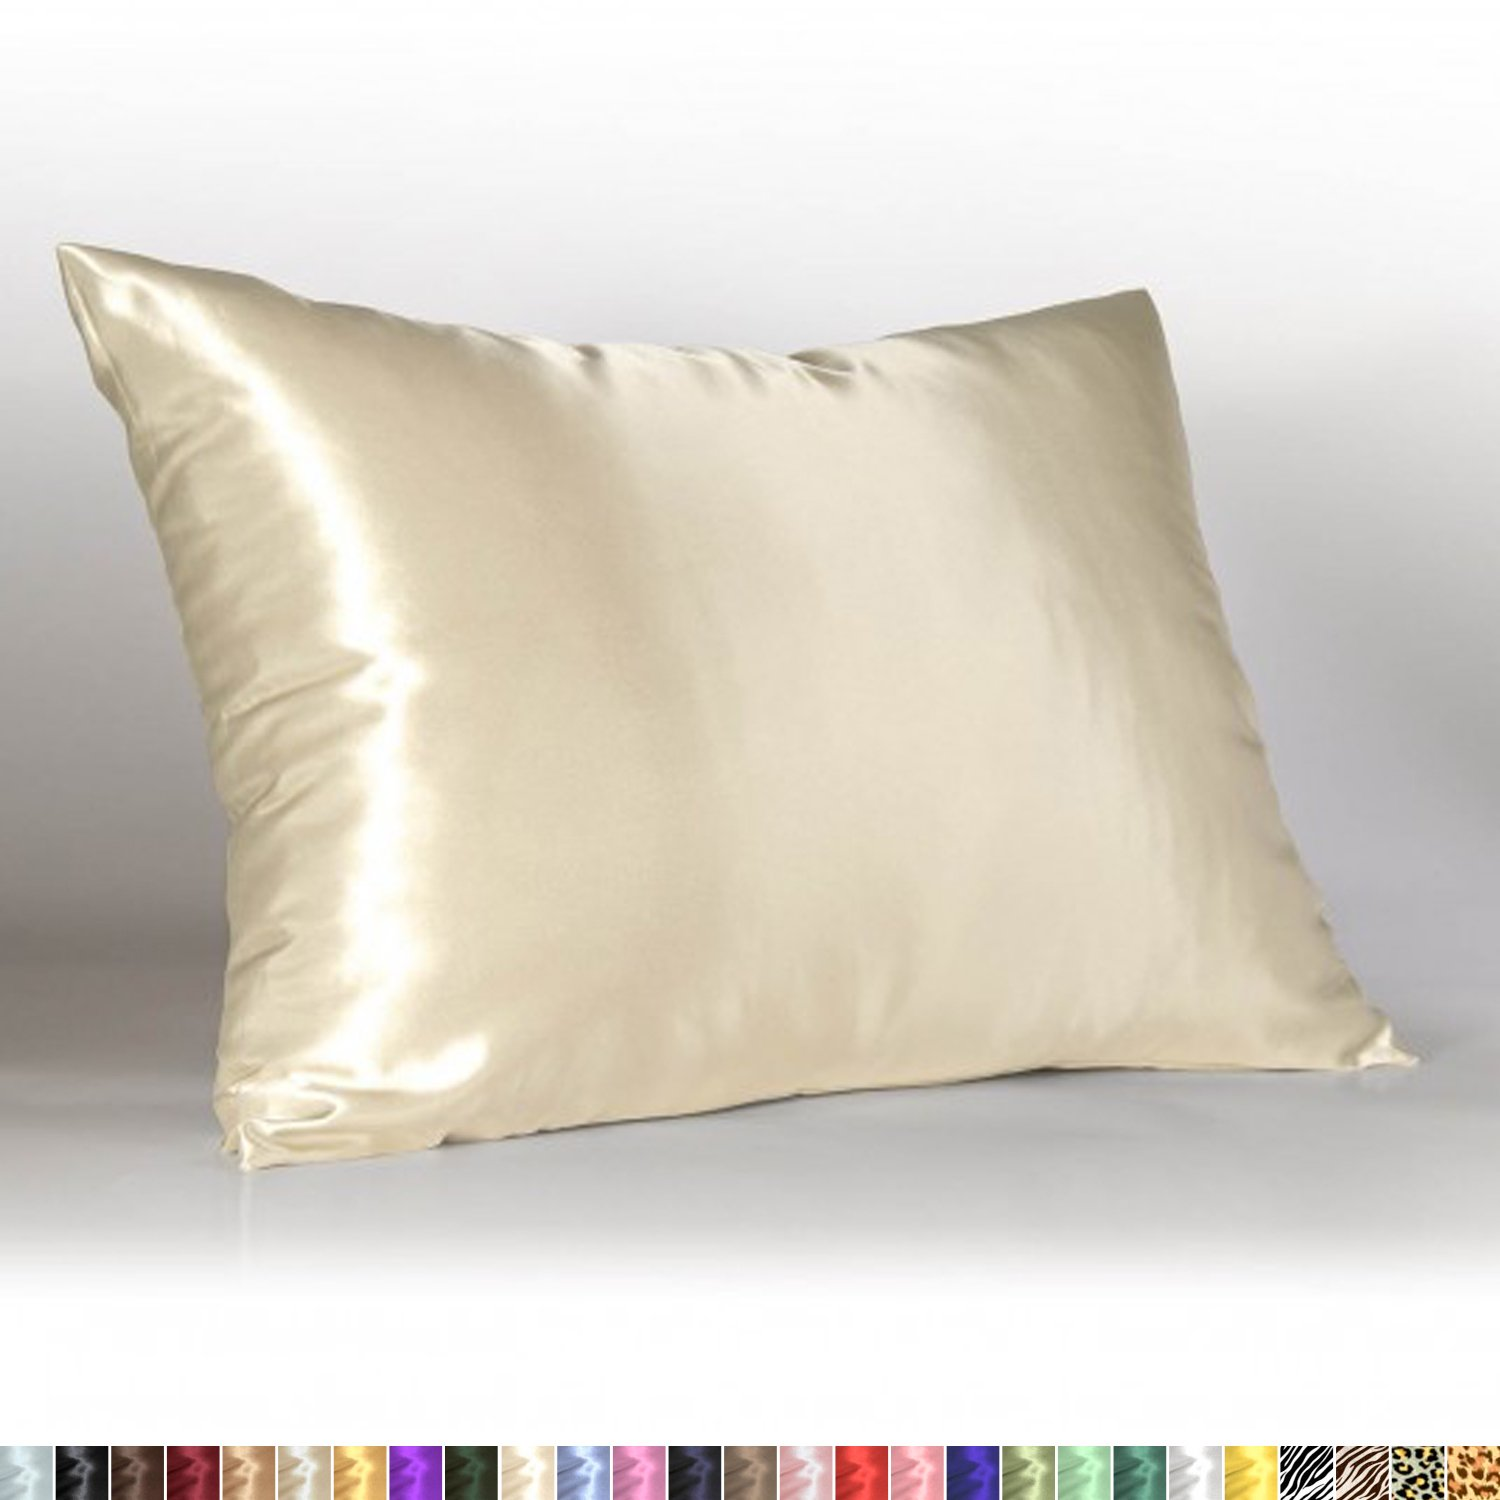 Sweet Dreams - Blissford Luxury Satin Pillowcase with Zipper, Standard Size, Ivory (Silky Satin Pillow Case for Hair) By Shop Bedding (1-Pack)